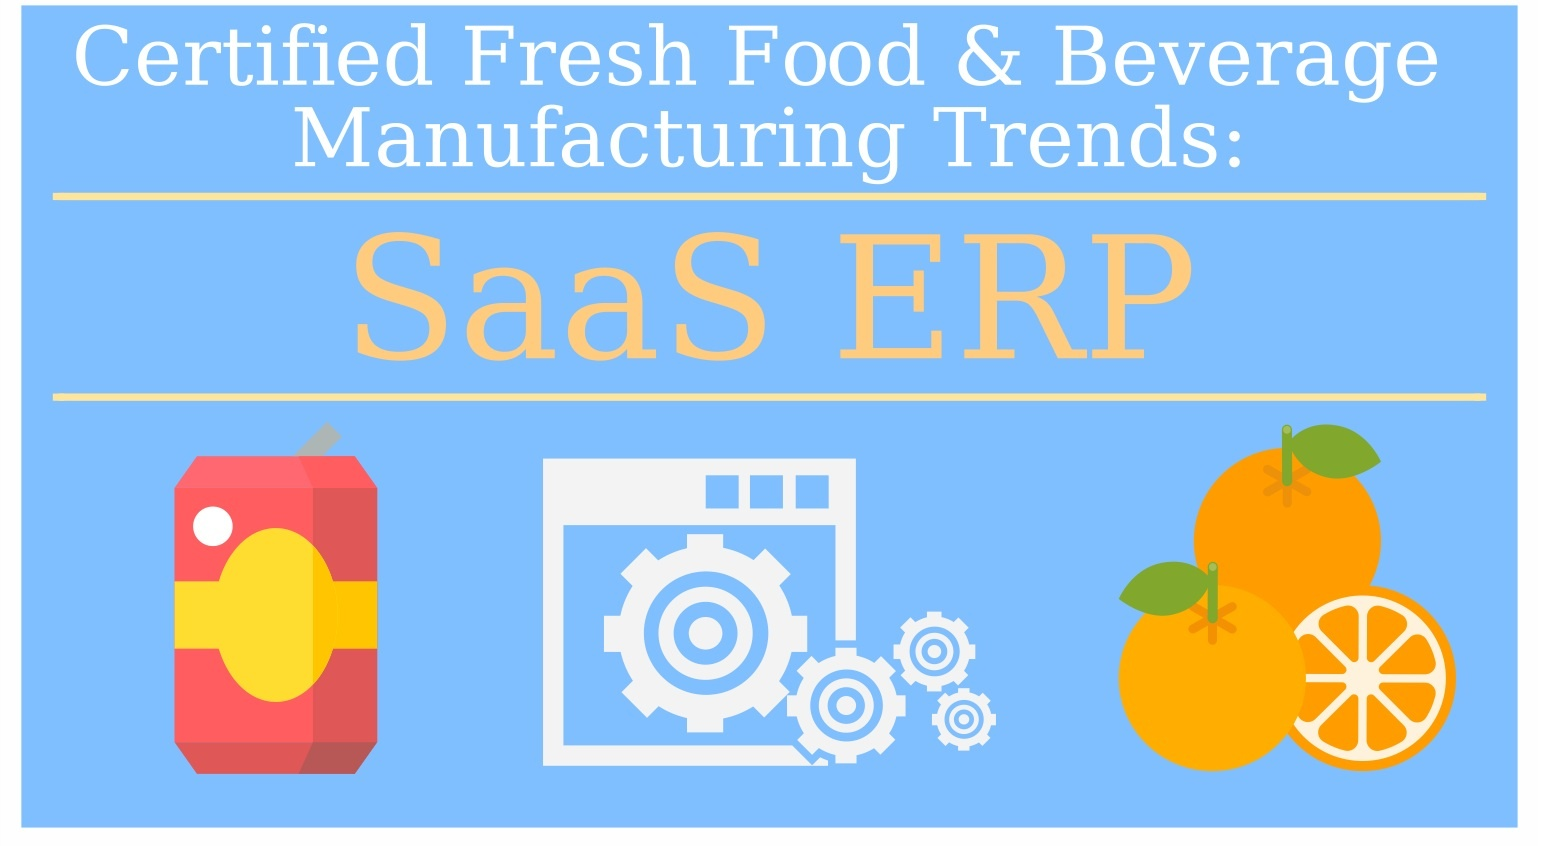 Food and Beverage Manufacturing Trends